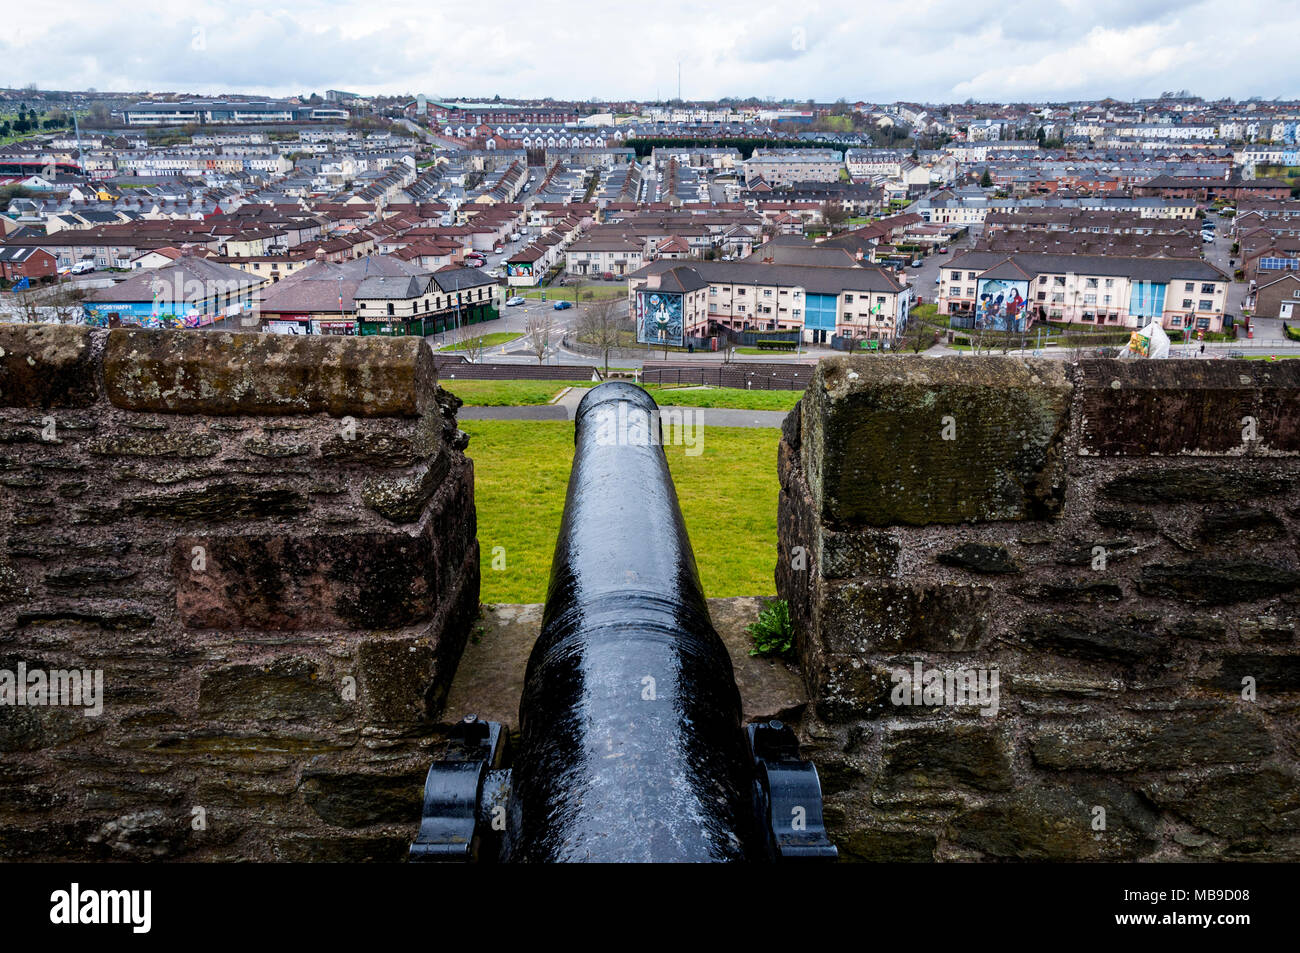 The Bogside area Londonderry, Derry, City of Derry, Northern Ireland, UK. From City walls with old cannon barrel. - Stock Image